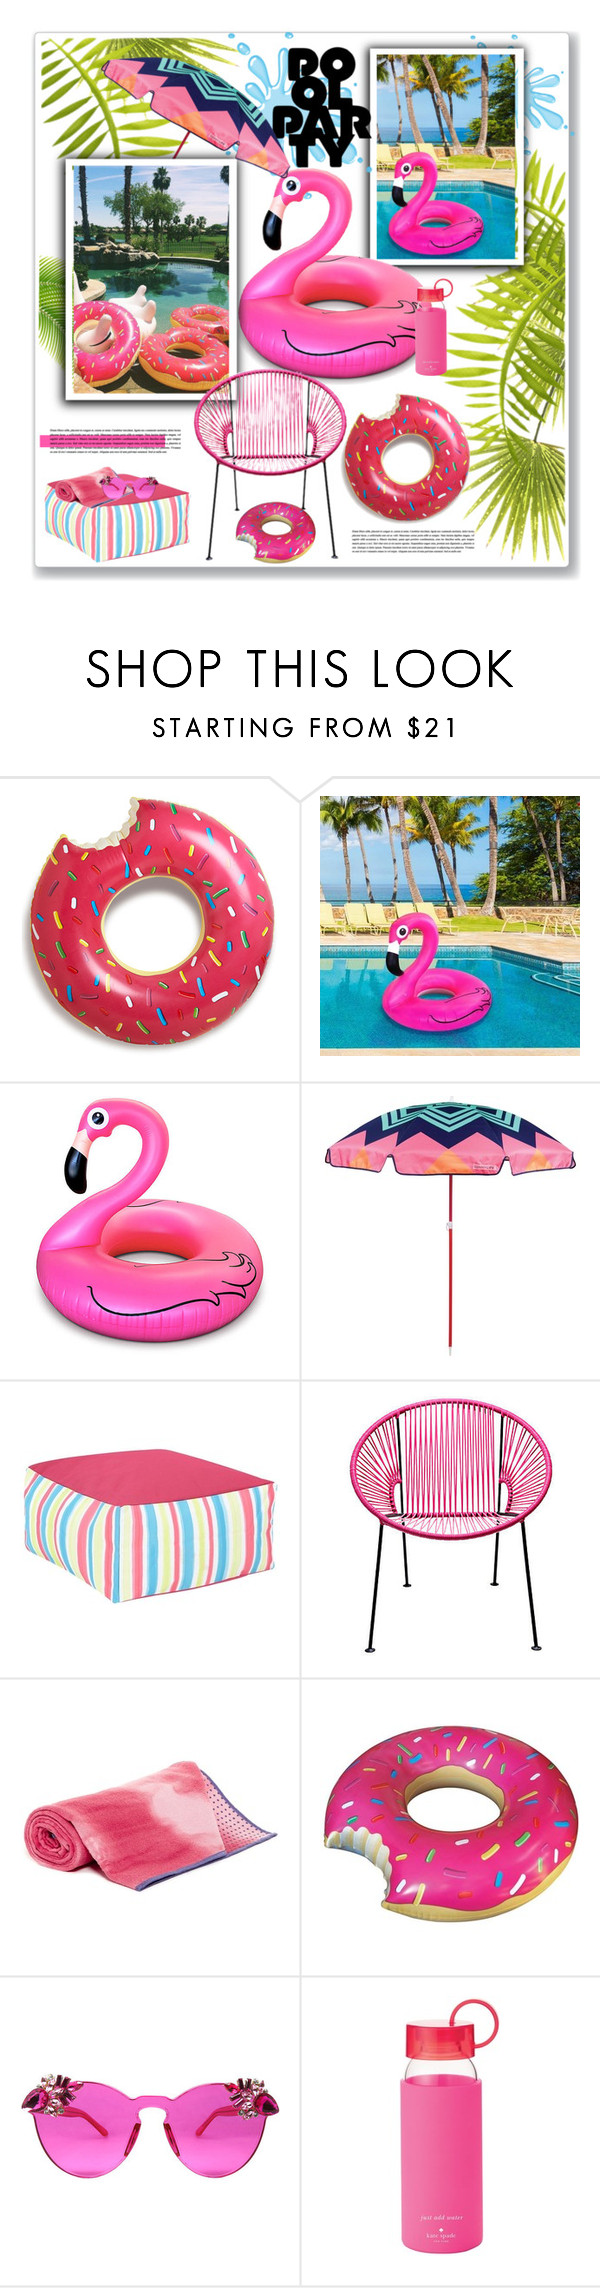 """pool floats"" by nanawidia ❤ liked on Polyvore featuring interior, interiors, interior design, home, home decor, interior decorating, Sunnylife, Manduka, Kate Spade and contestentry"